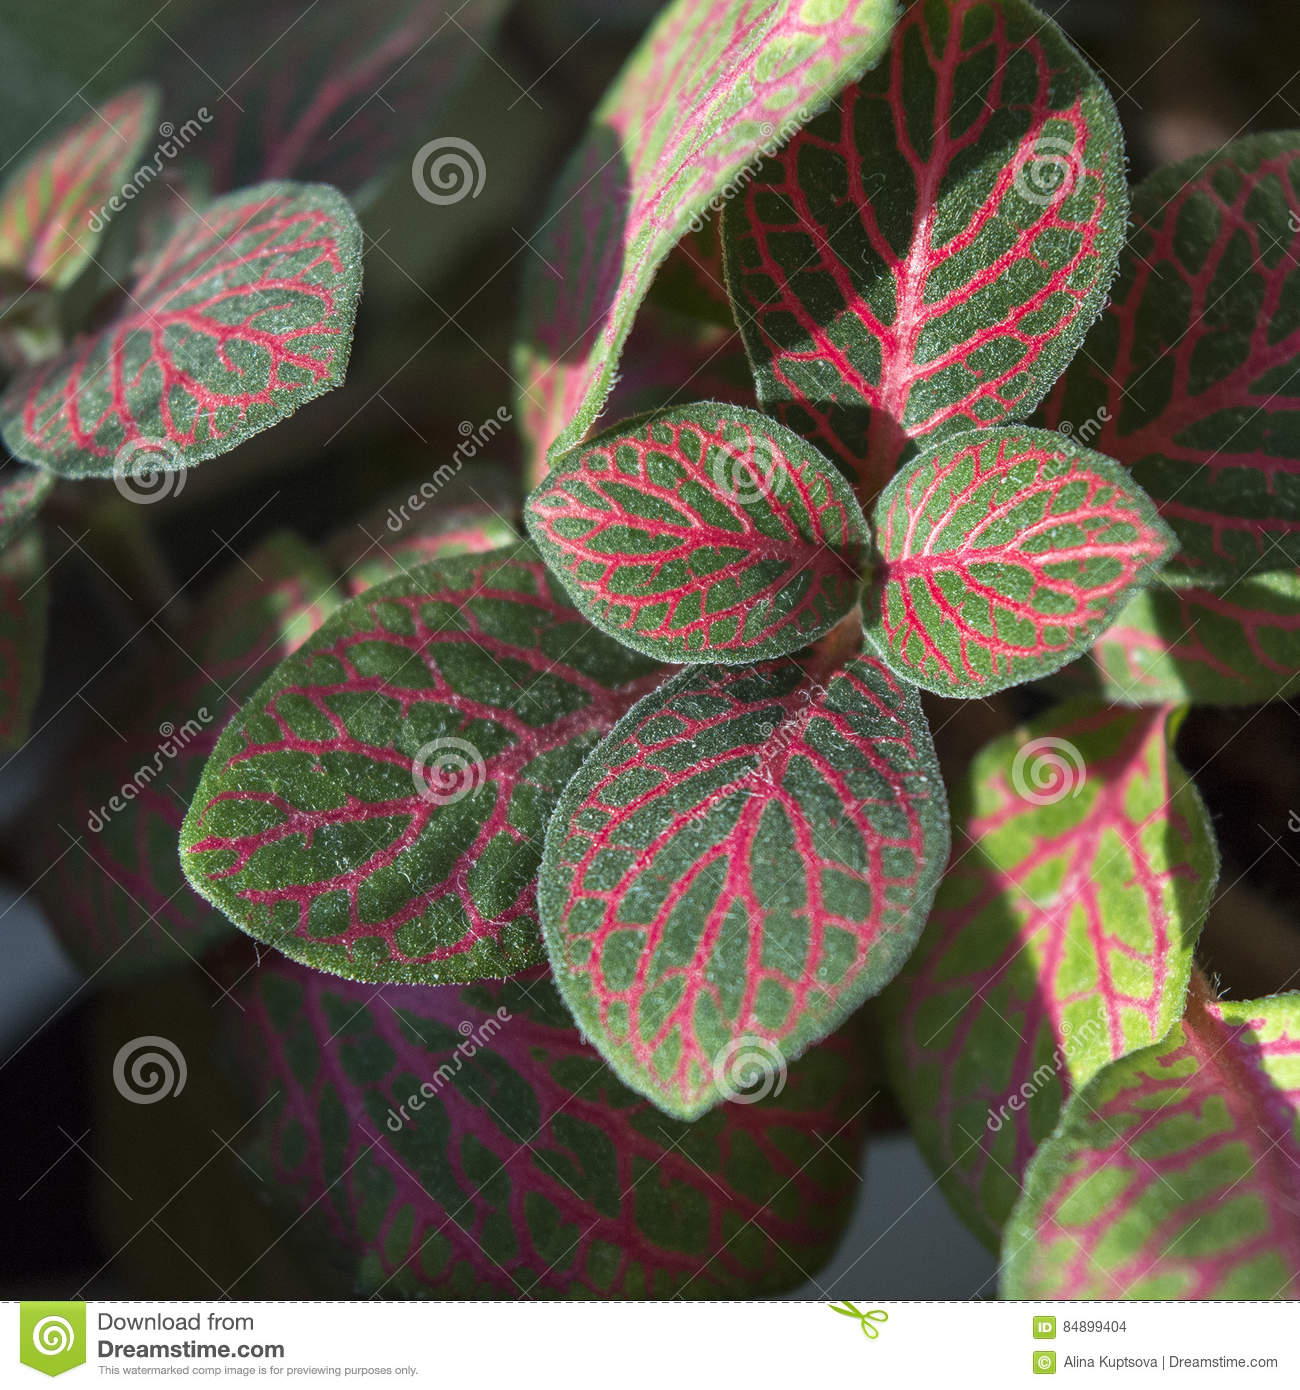 red foliage flowers, red foliage bushes, red foliage grasses, red foliage annuals, red foliage hibiscus, common indoor houseplants, red foliage plants, red and green houseplants, red foliage perennials, red flowering houseplants, red foliage vines, on red foliage houseplants